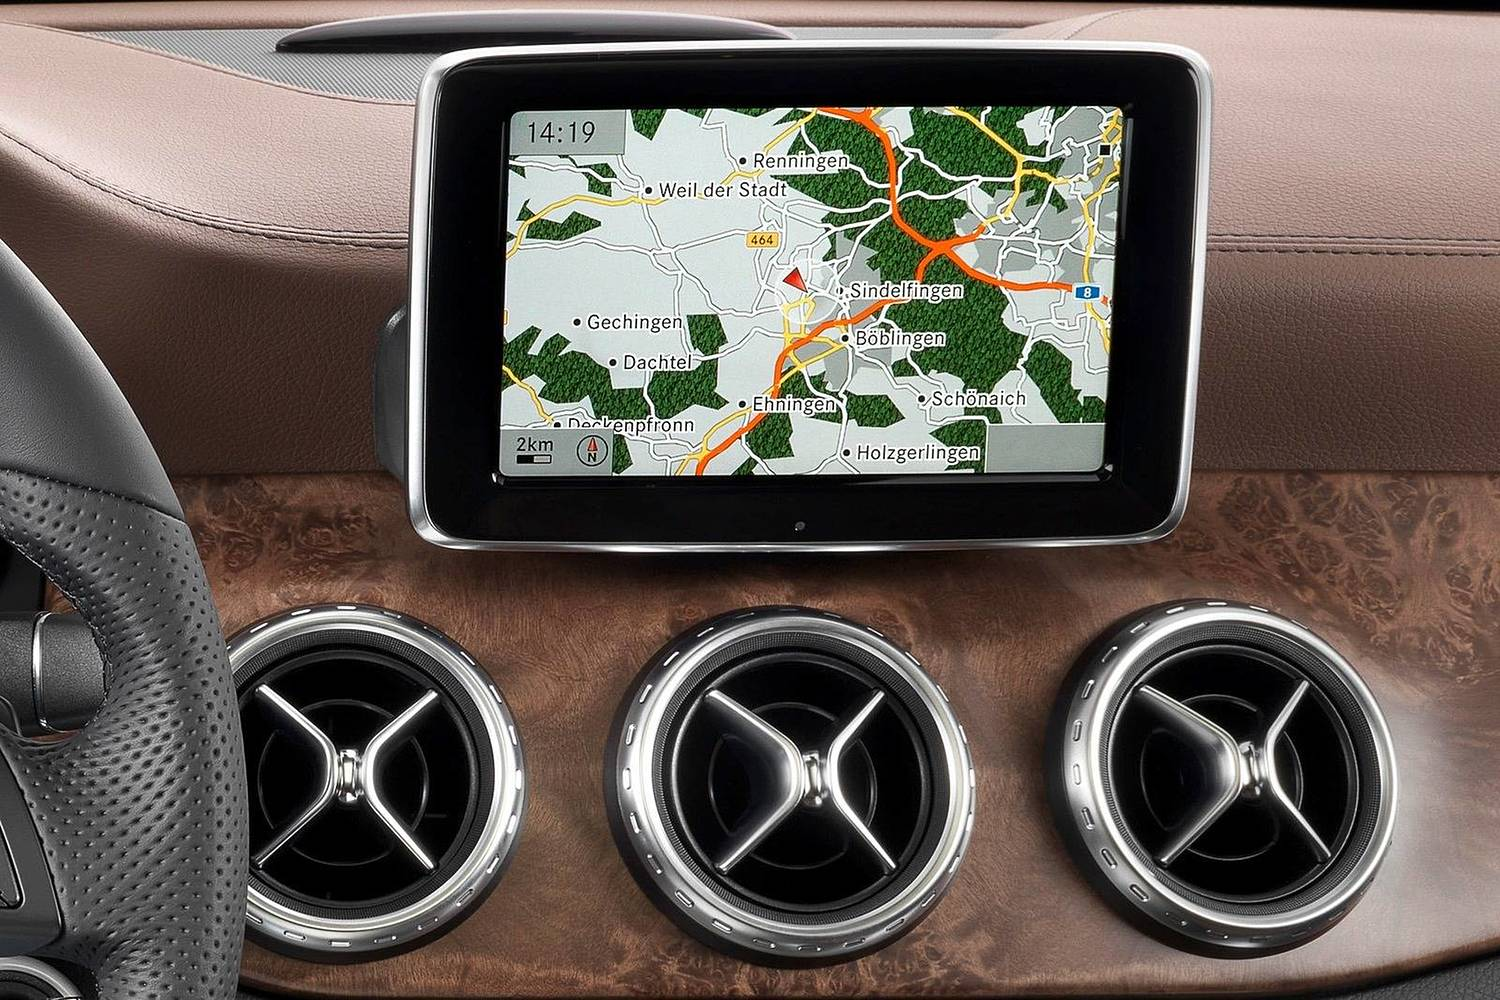 Mercedes-Benz GLA-Class GLA250 4MATIC 4dr SUV Navigation System (2015 model year shown)